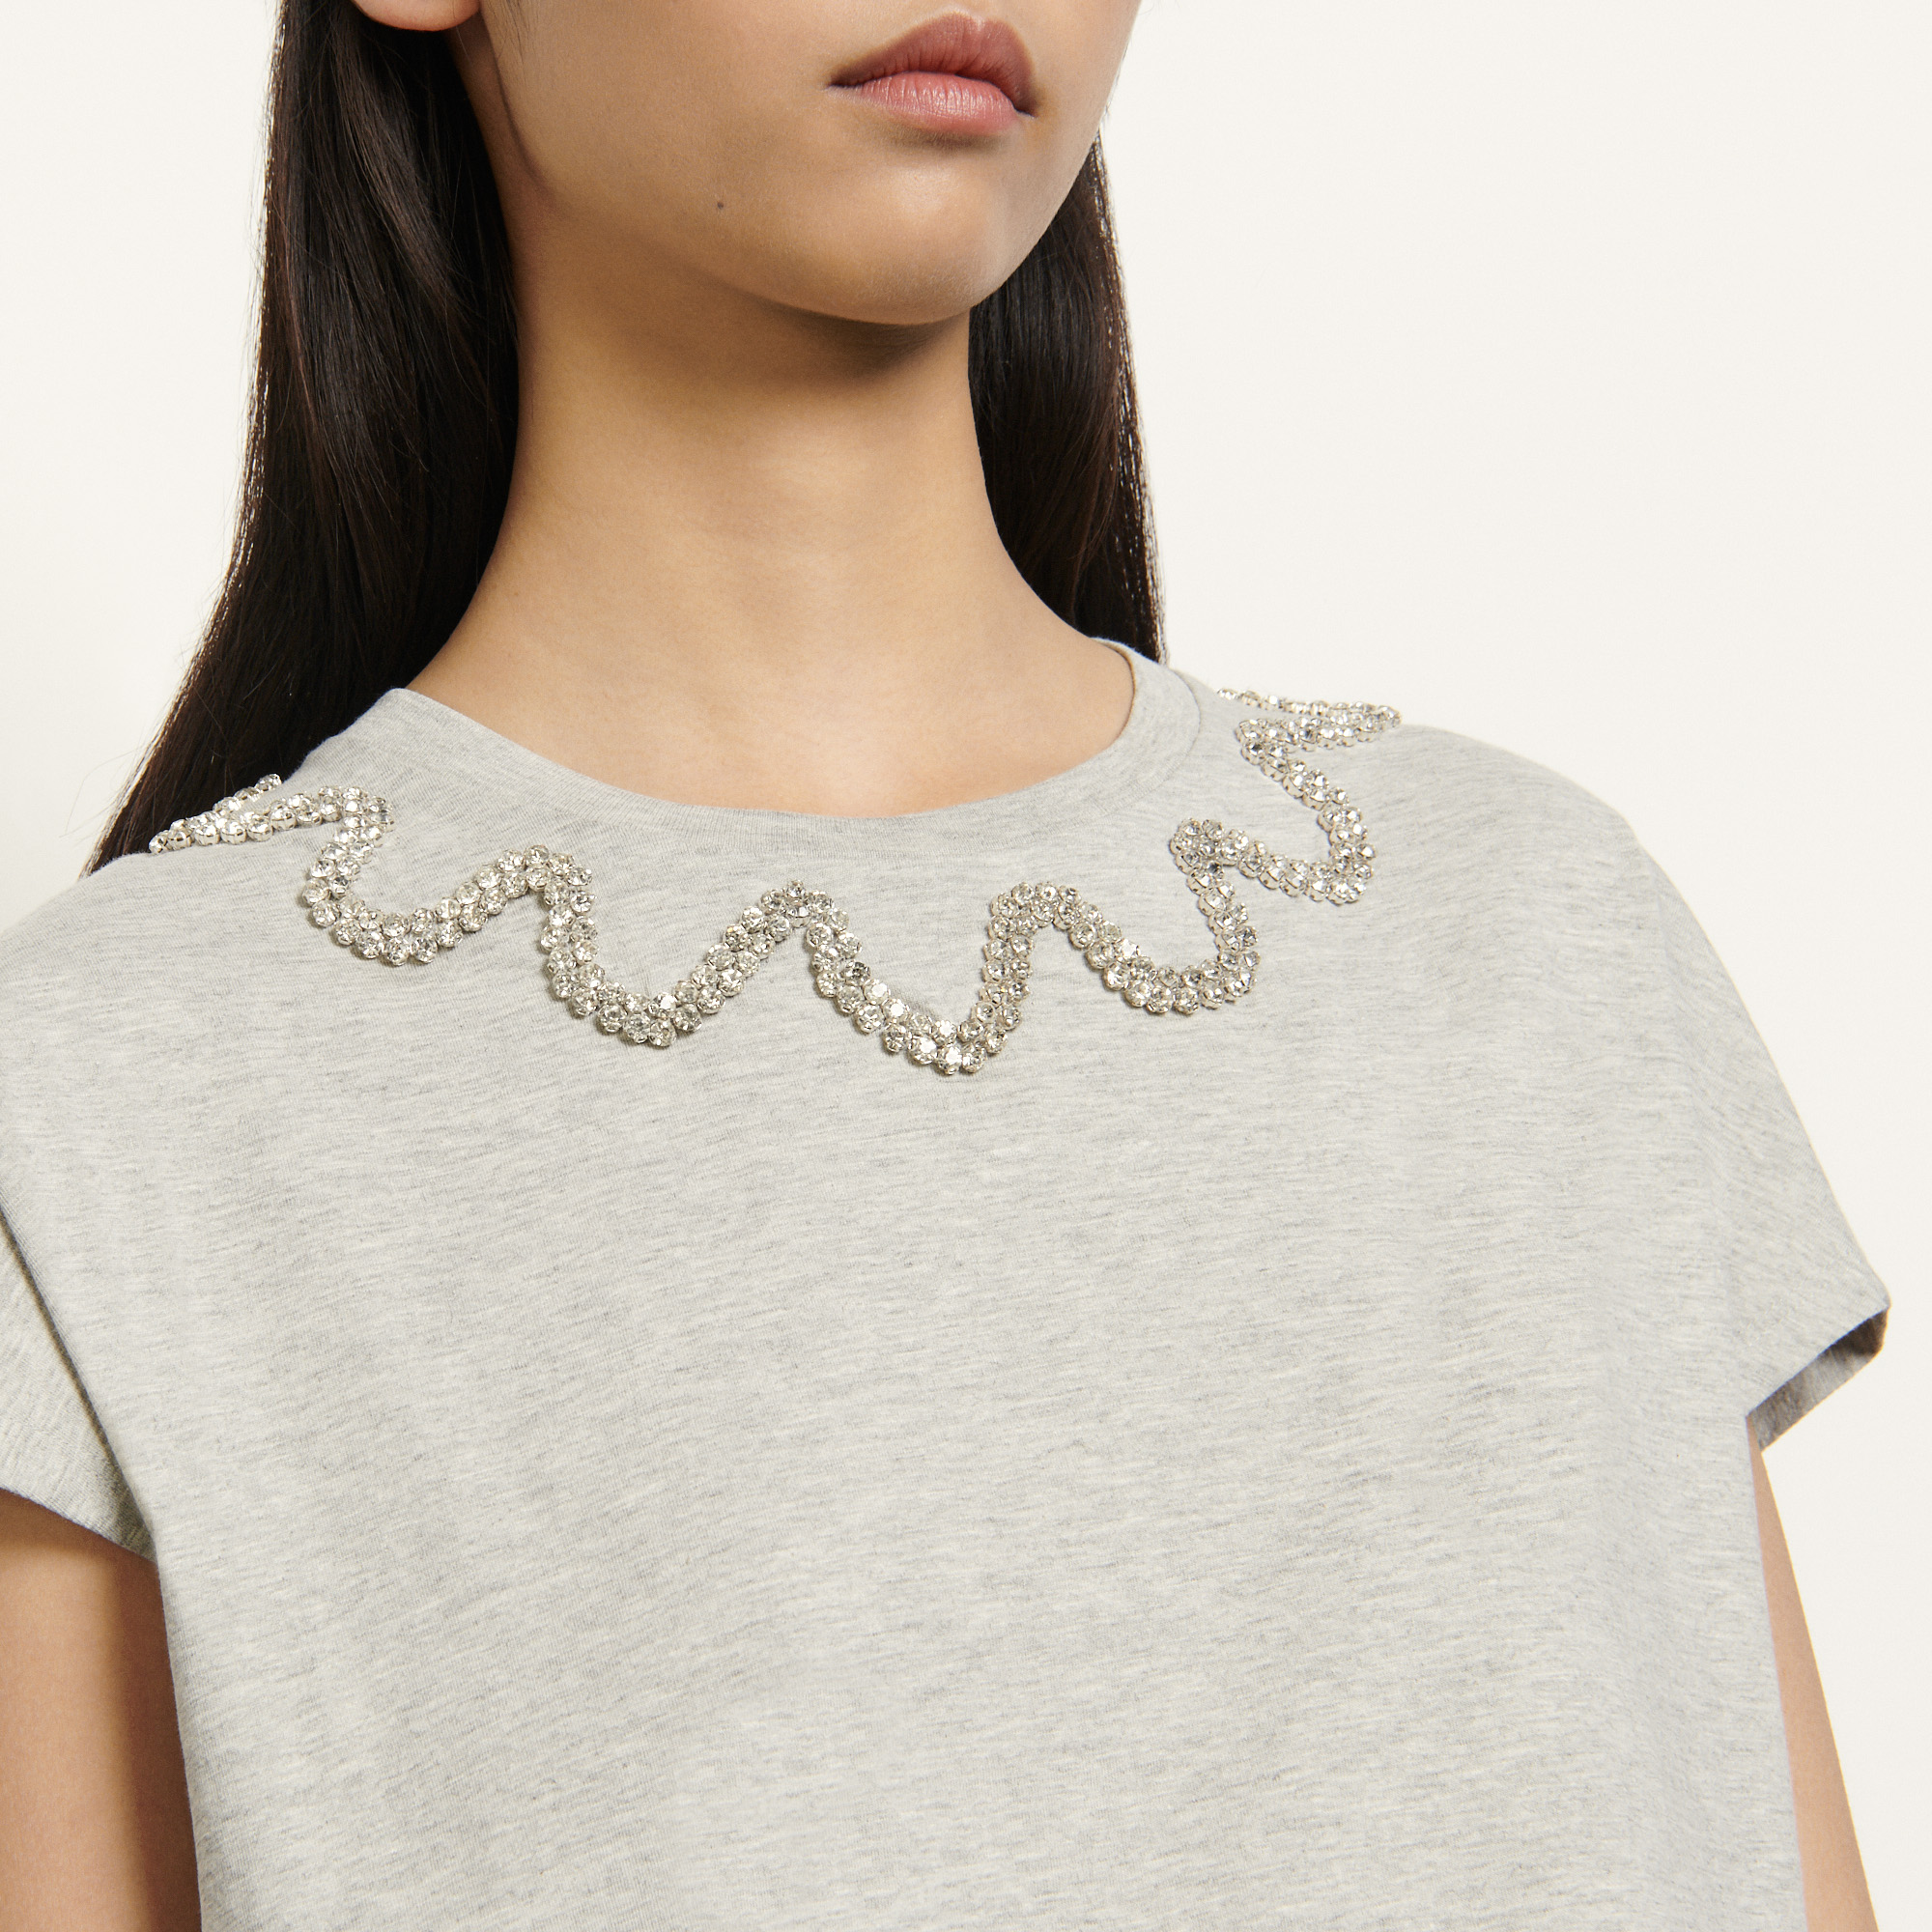 Sleeveless T shirt with rhinestones - Grey